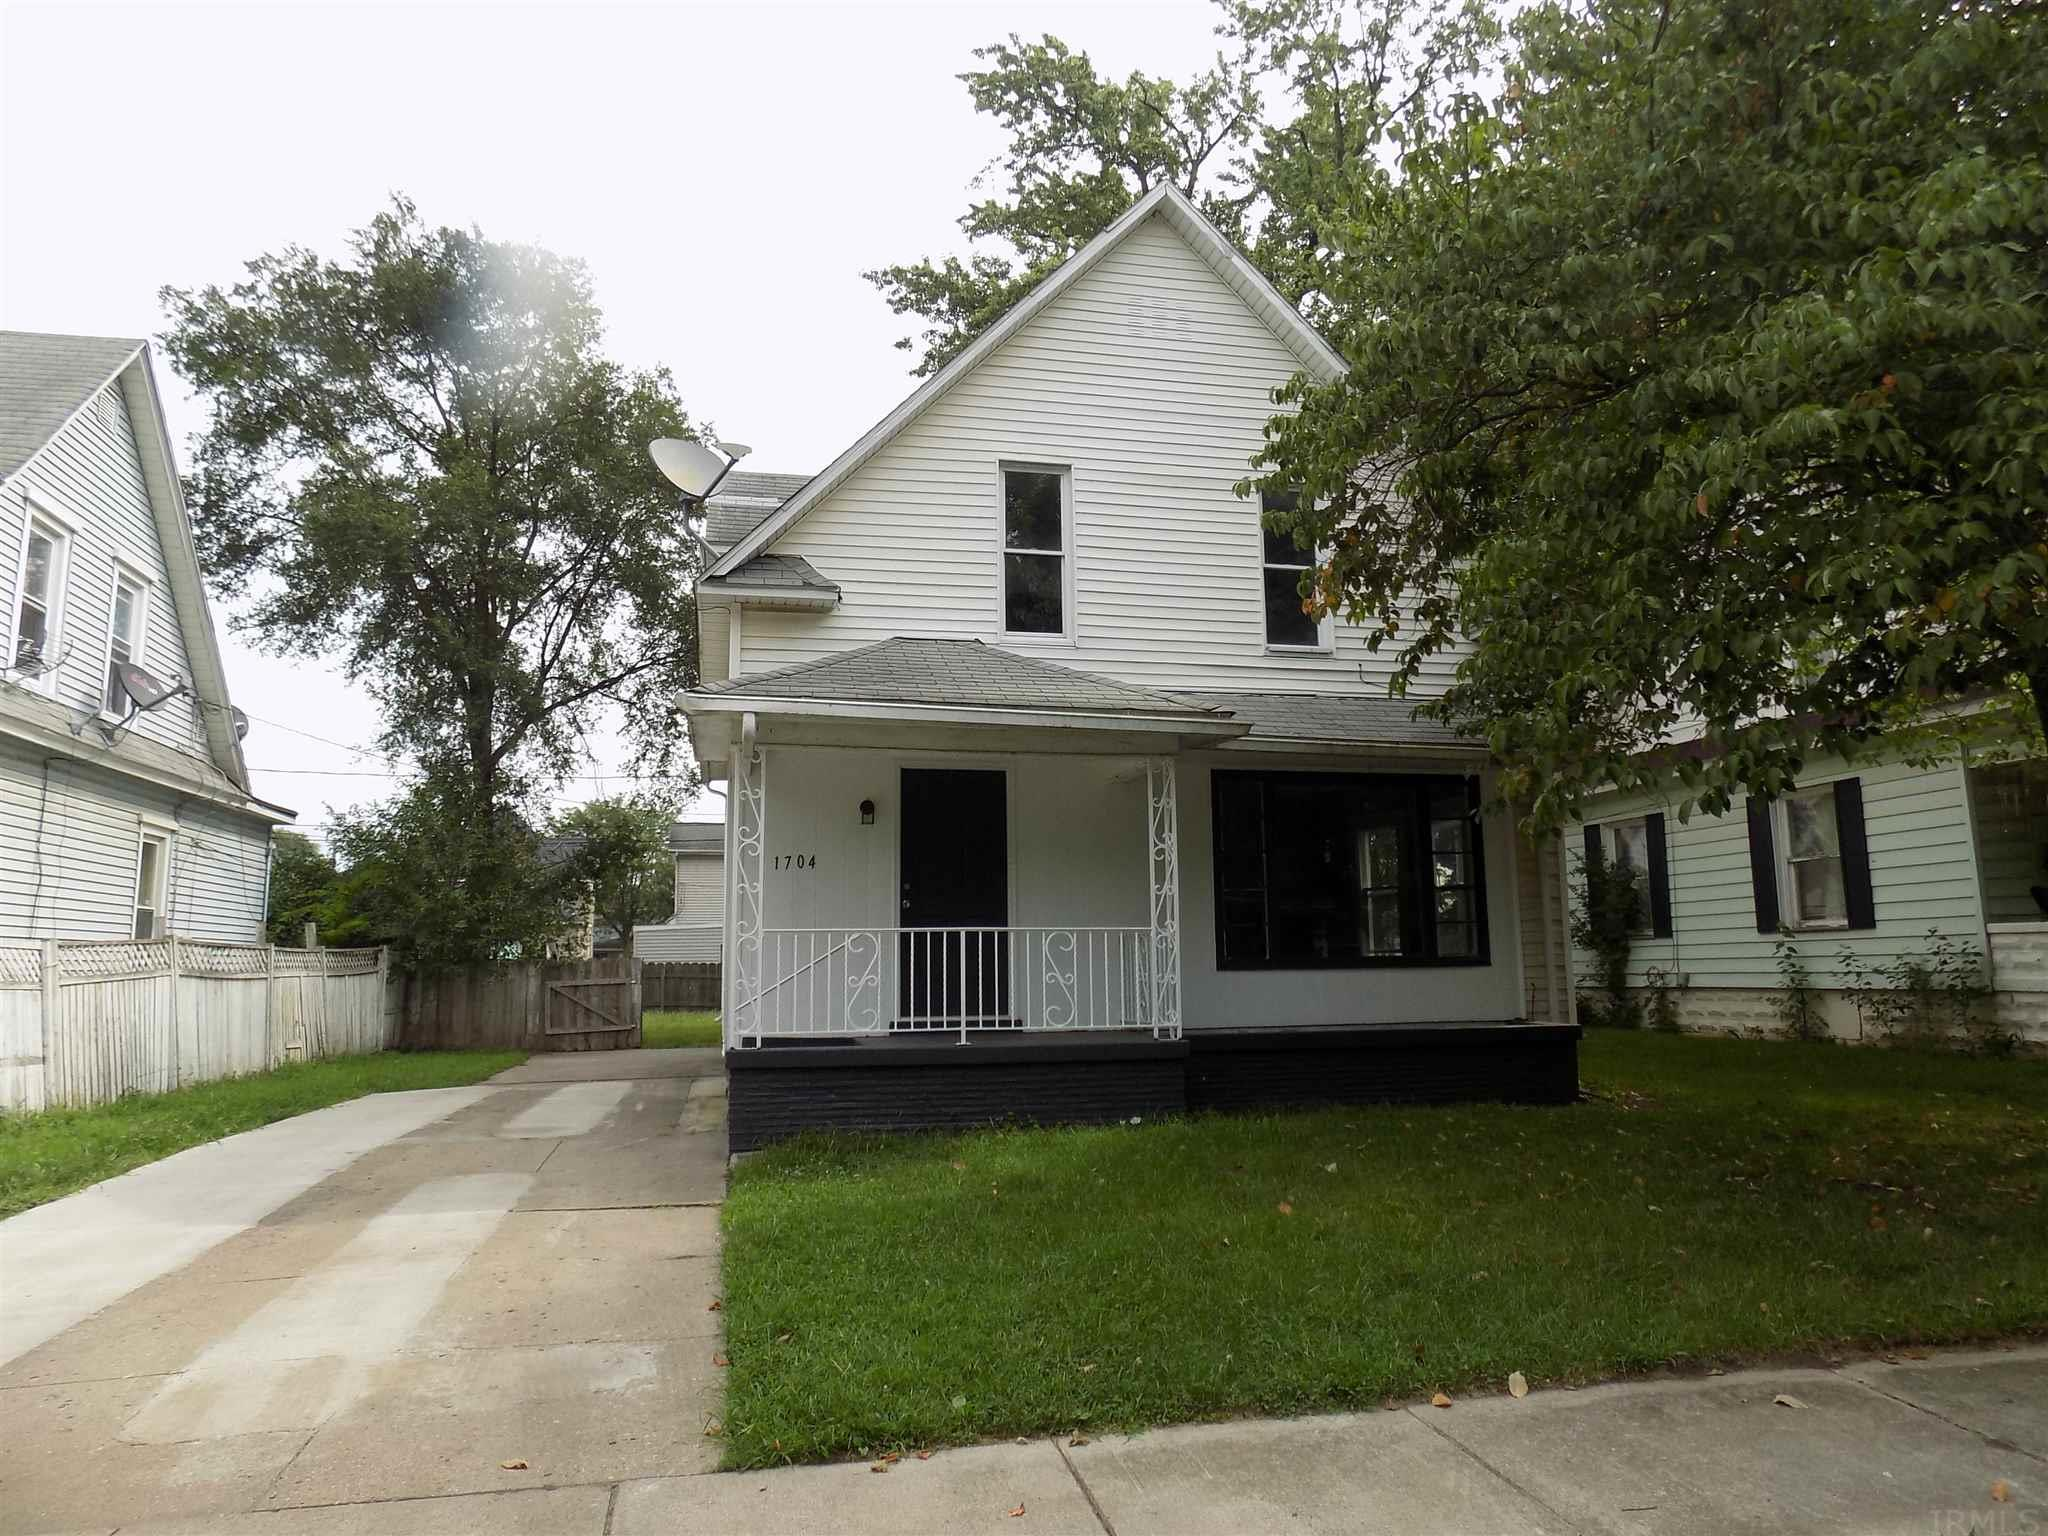 1704 Morton Elkhart, IN 46516